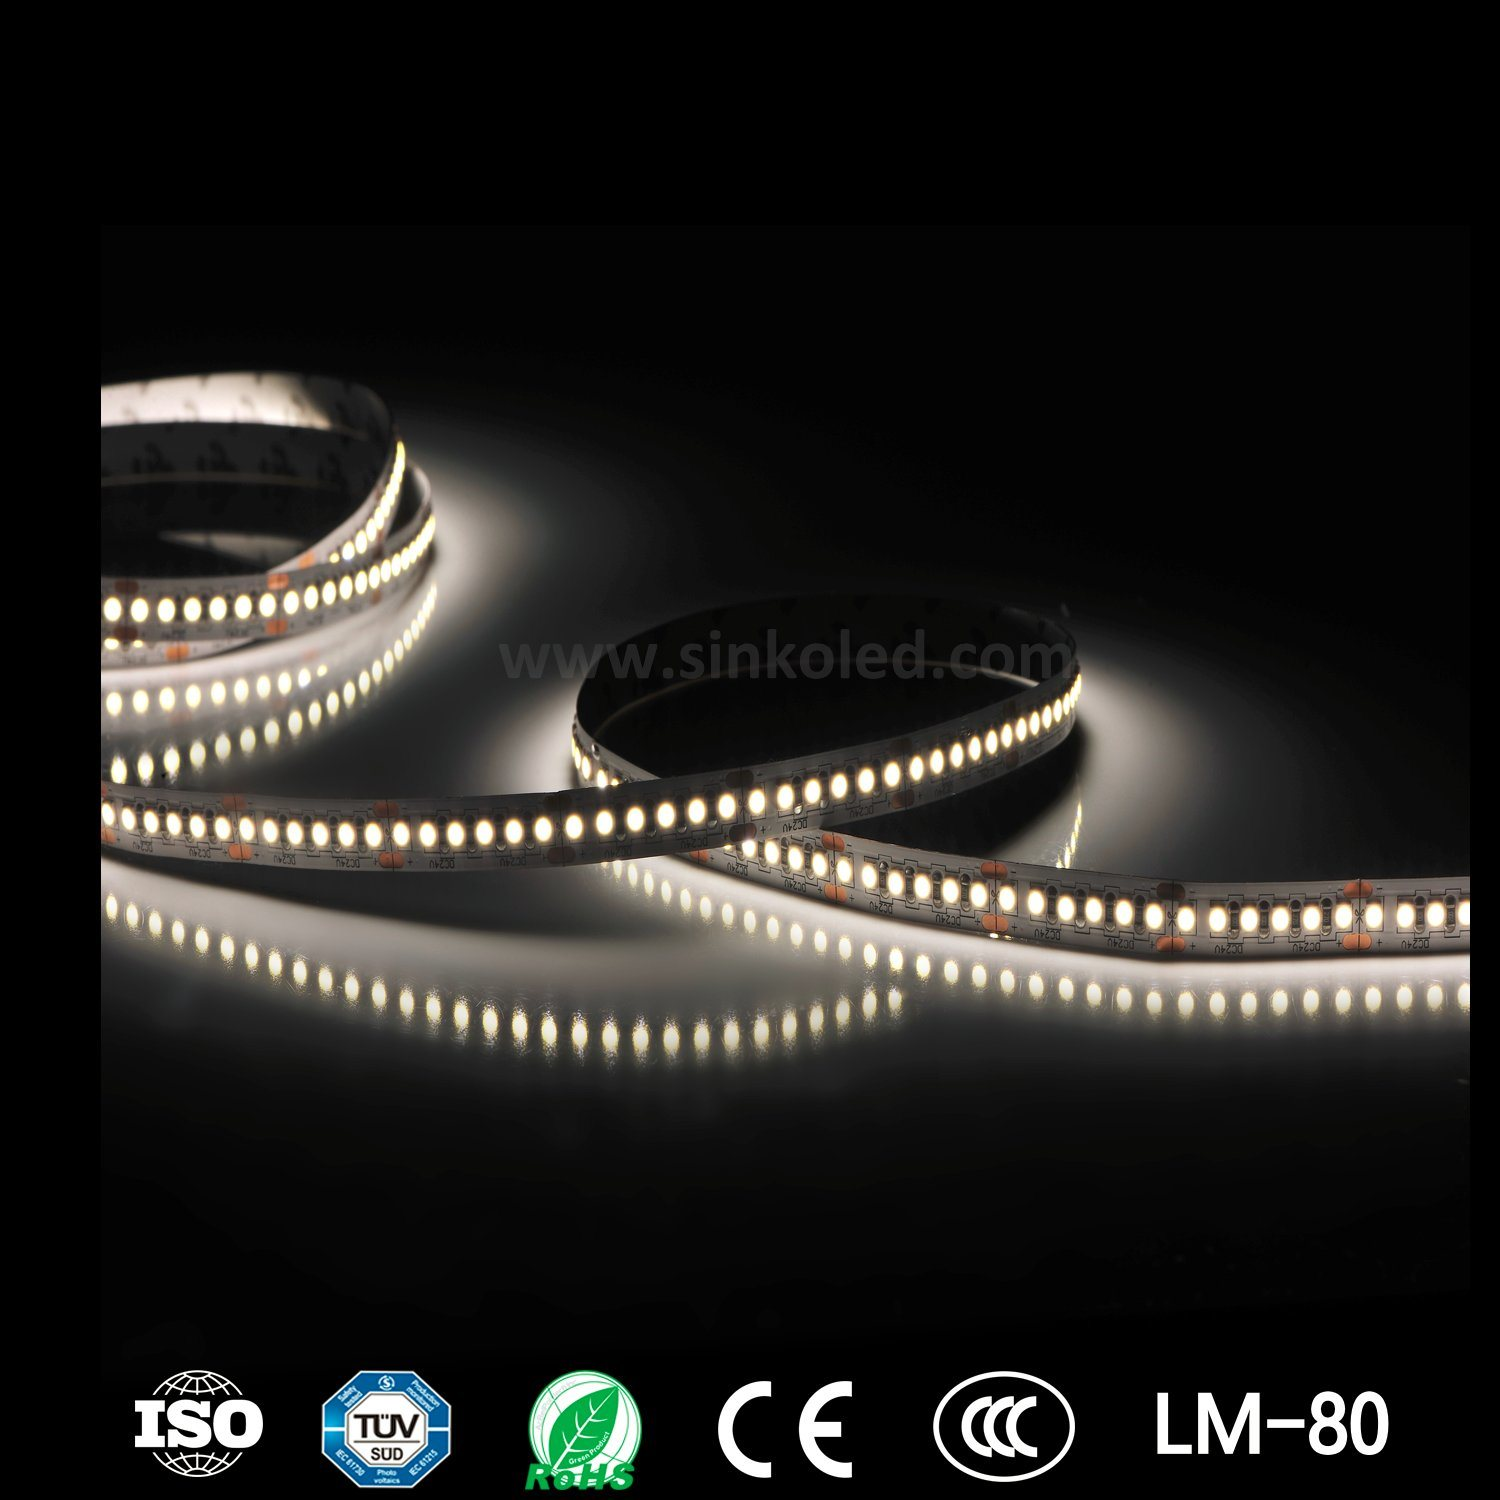 SMD2835 180LEDs/M 43W 100lm/W High Resolution Kitchen LED Strip Within Macadam 3 Step